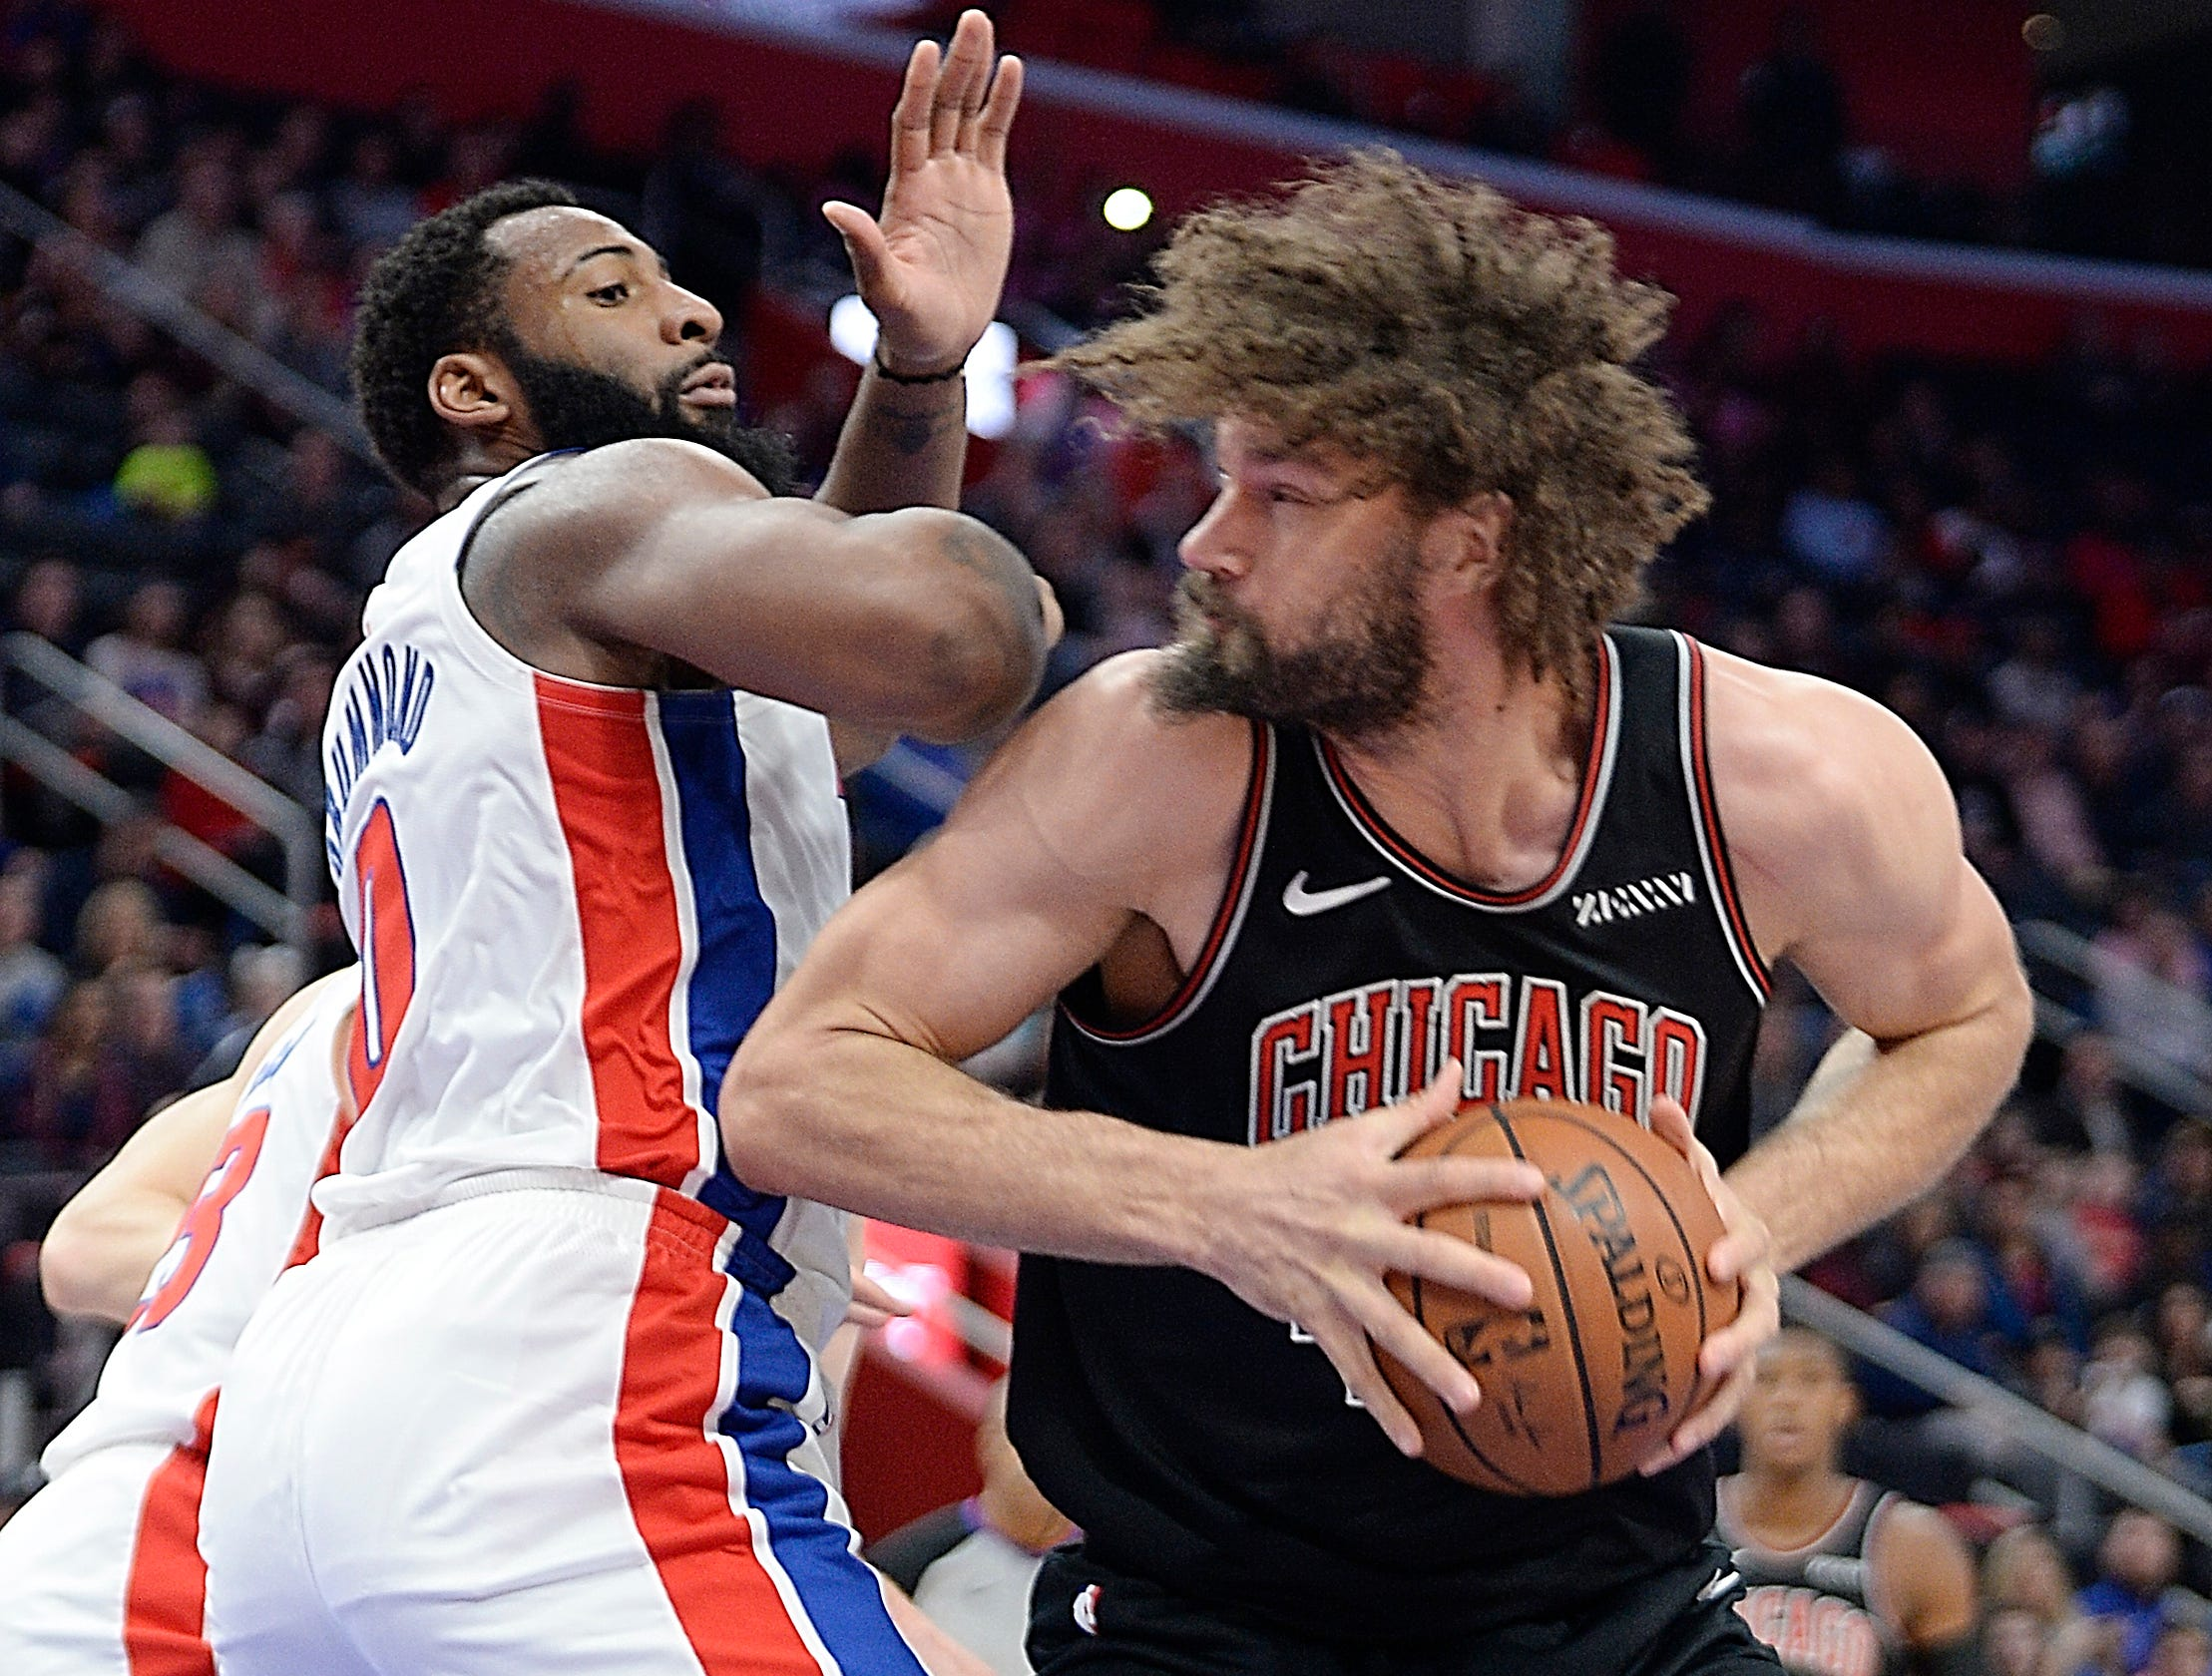 Bulls' Robin Lopez looks for room around Pistons' Andre Drummond in the first quarter.